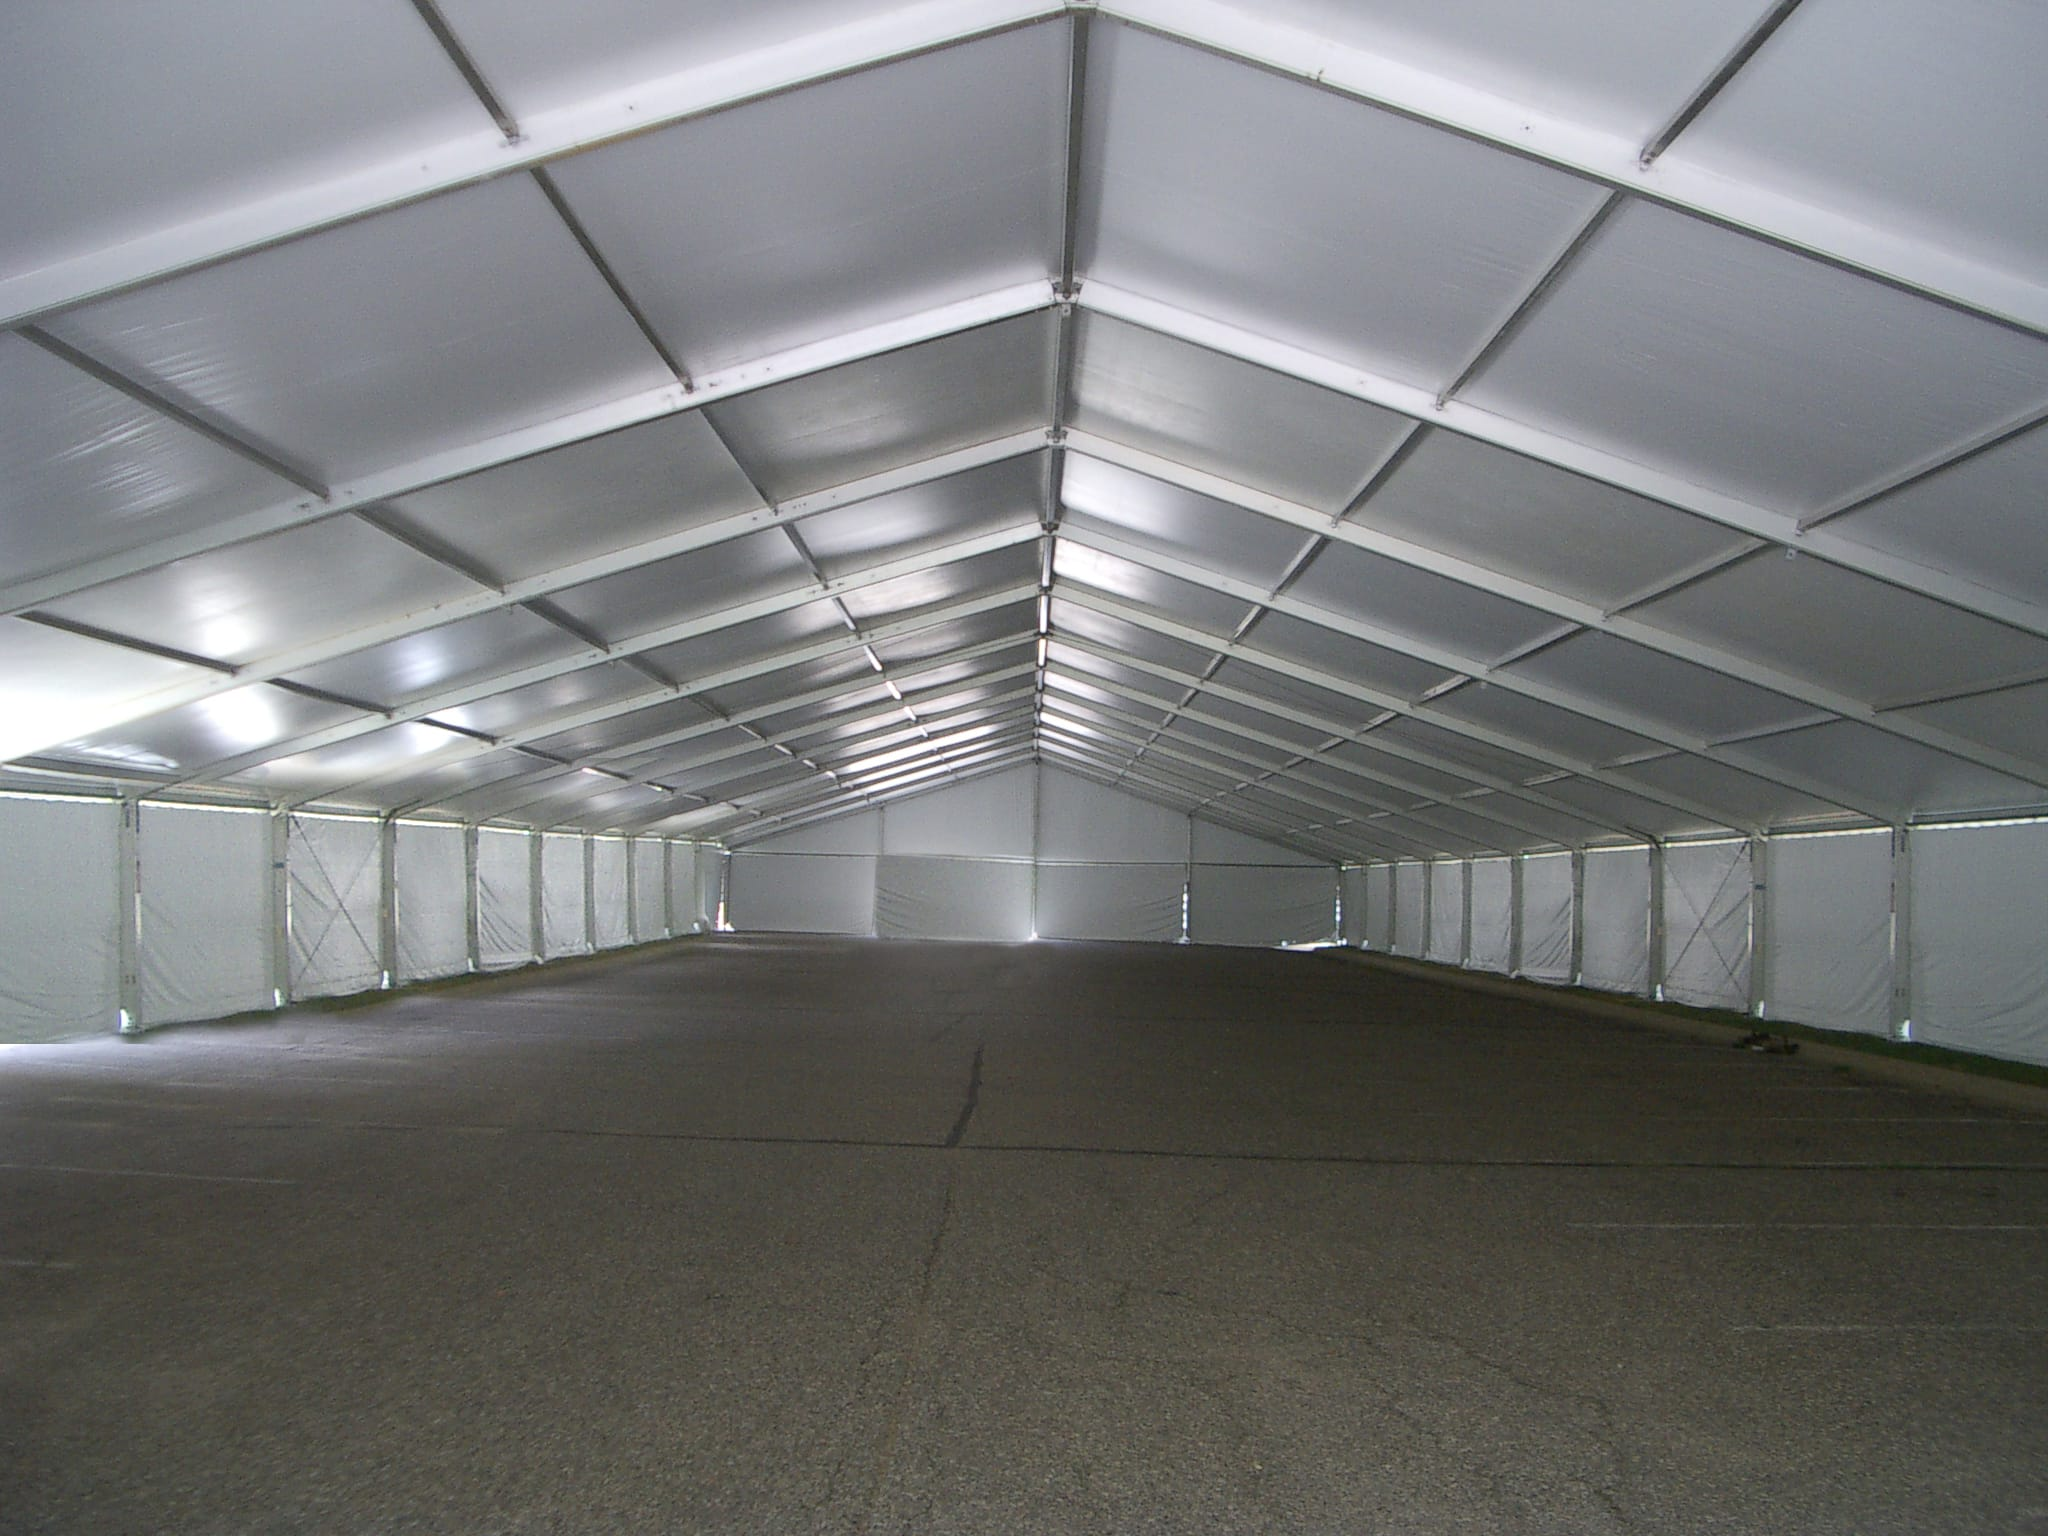 & The Benefits of Temporary Warehouse Structures - American Pavilion